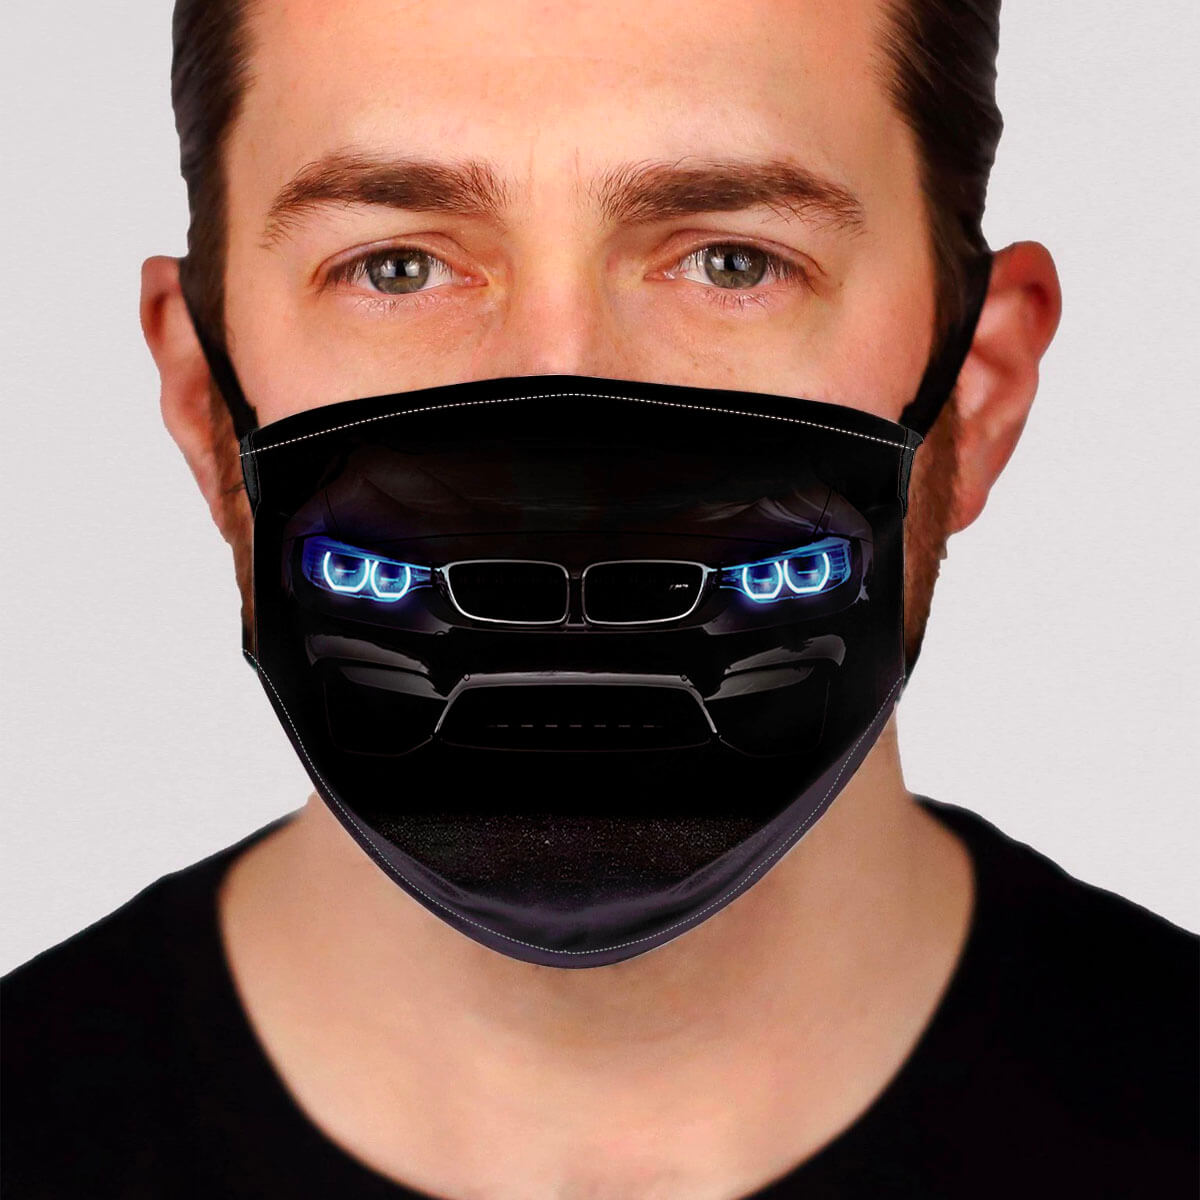 BMW Headlights Face Mask